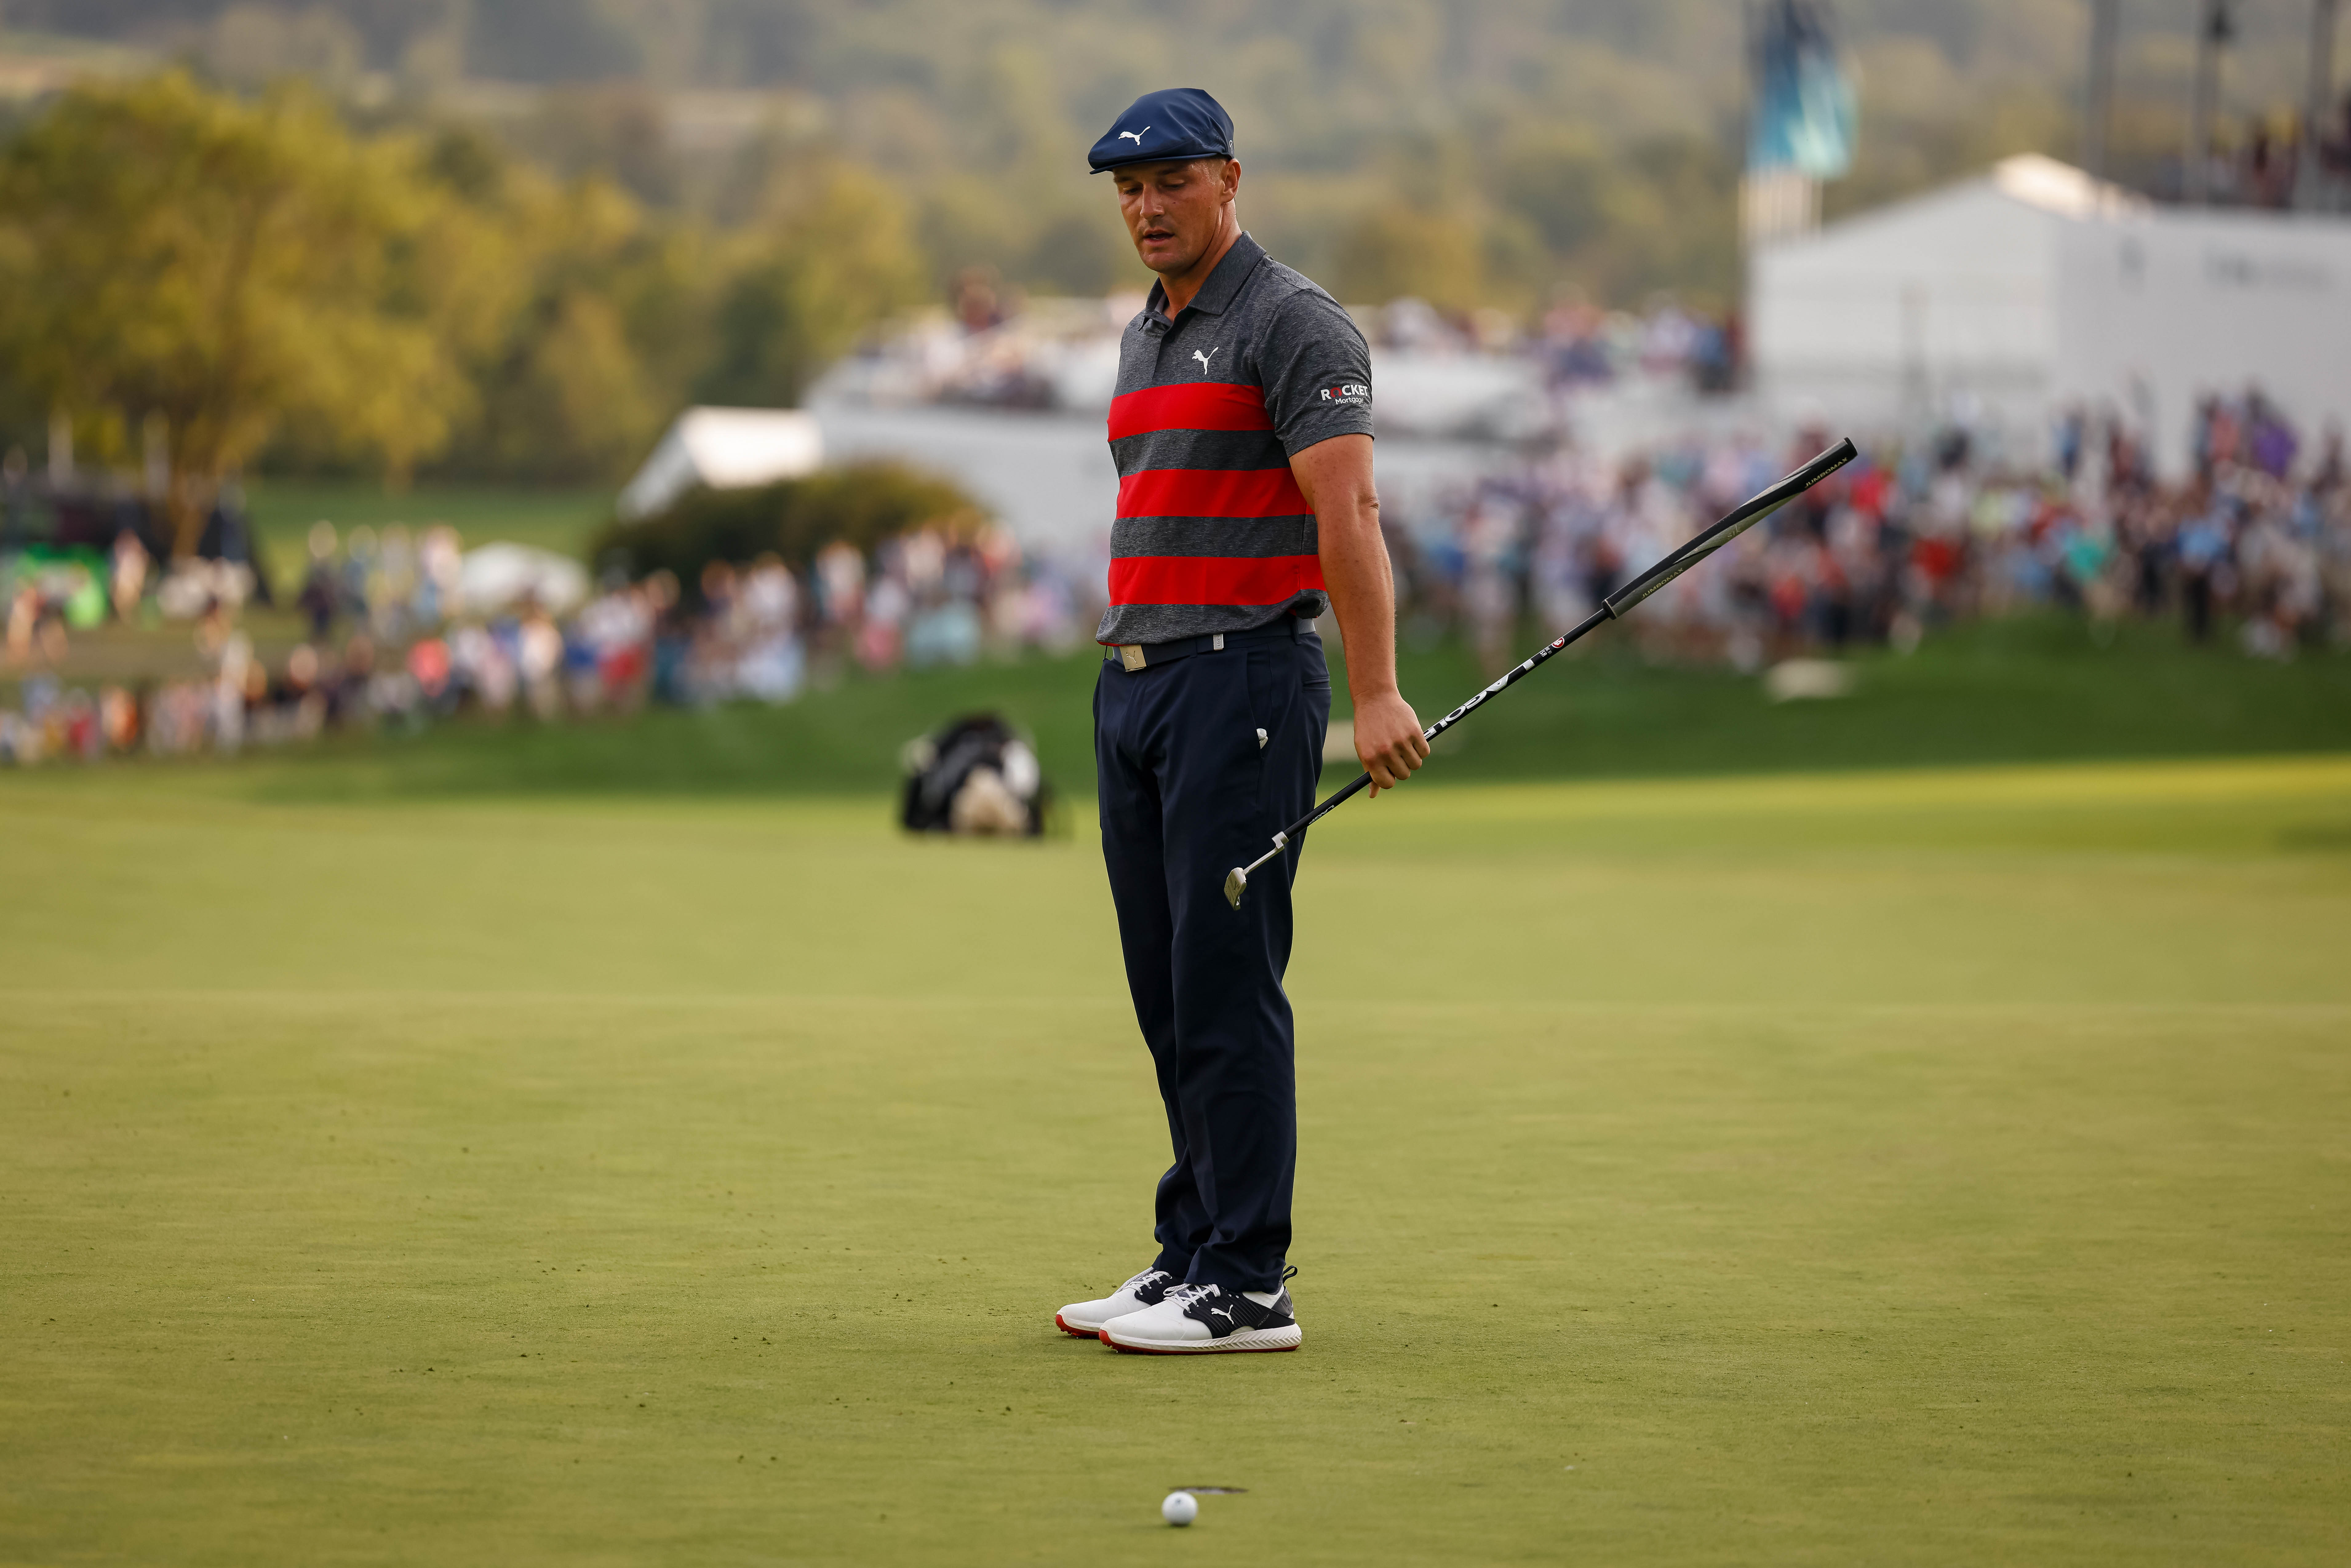 Aug 29, 2021; Owings Mills, Maryland, USA; Bryson DeChambeau reacts after missing a putt during the second playoff hole of the final round of the BMW Championship golf tournament. Mandatory Credit: Scott Taetsch-USA TODAY Sports